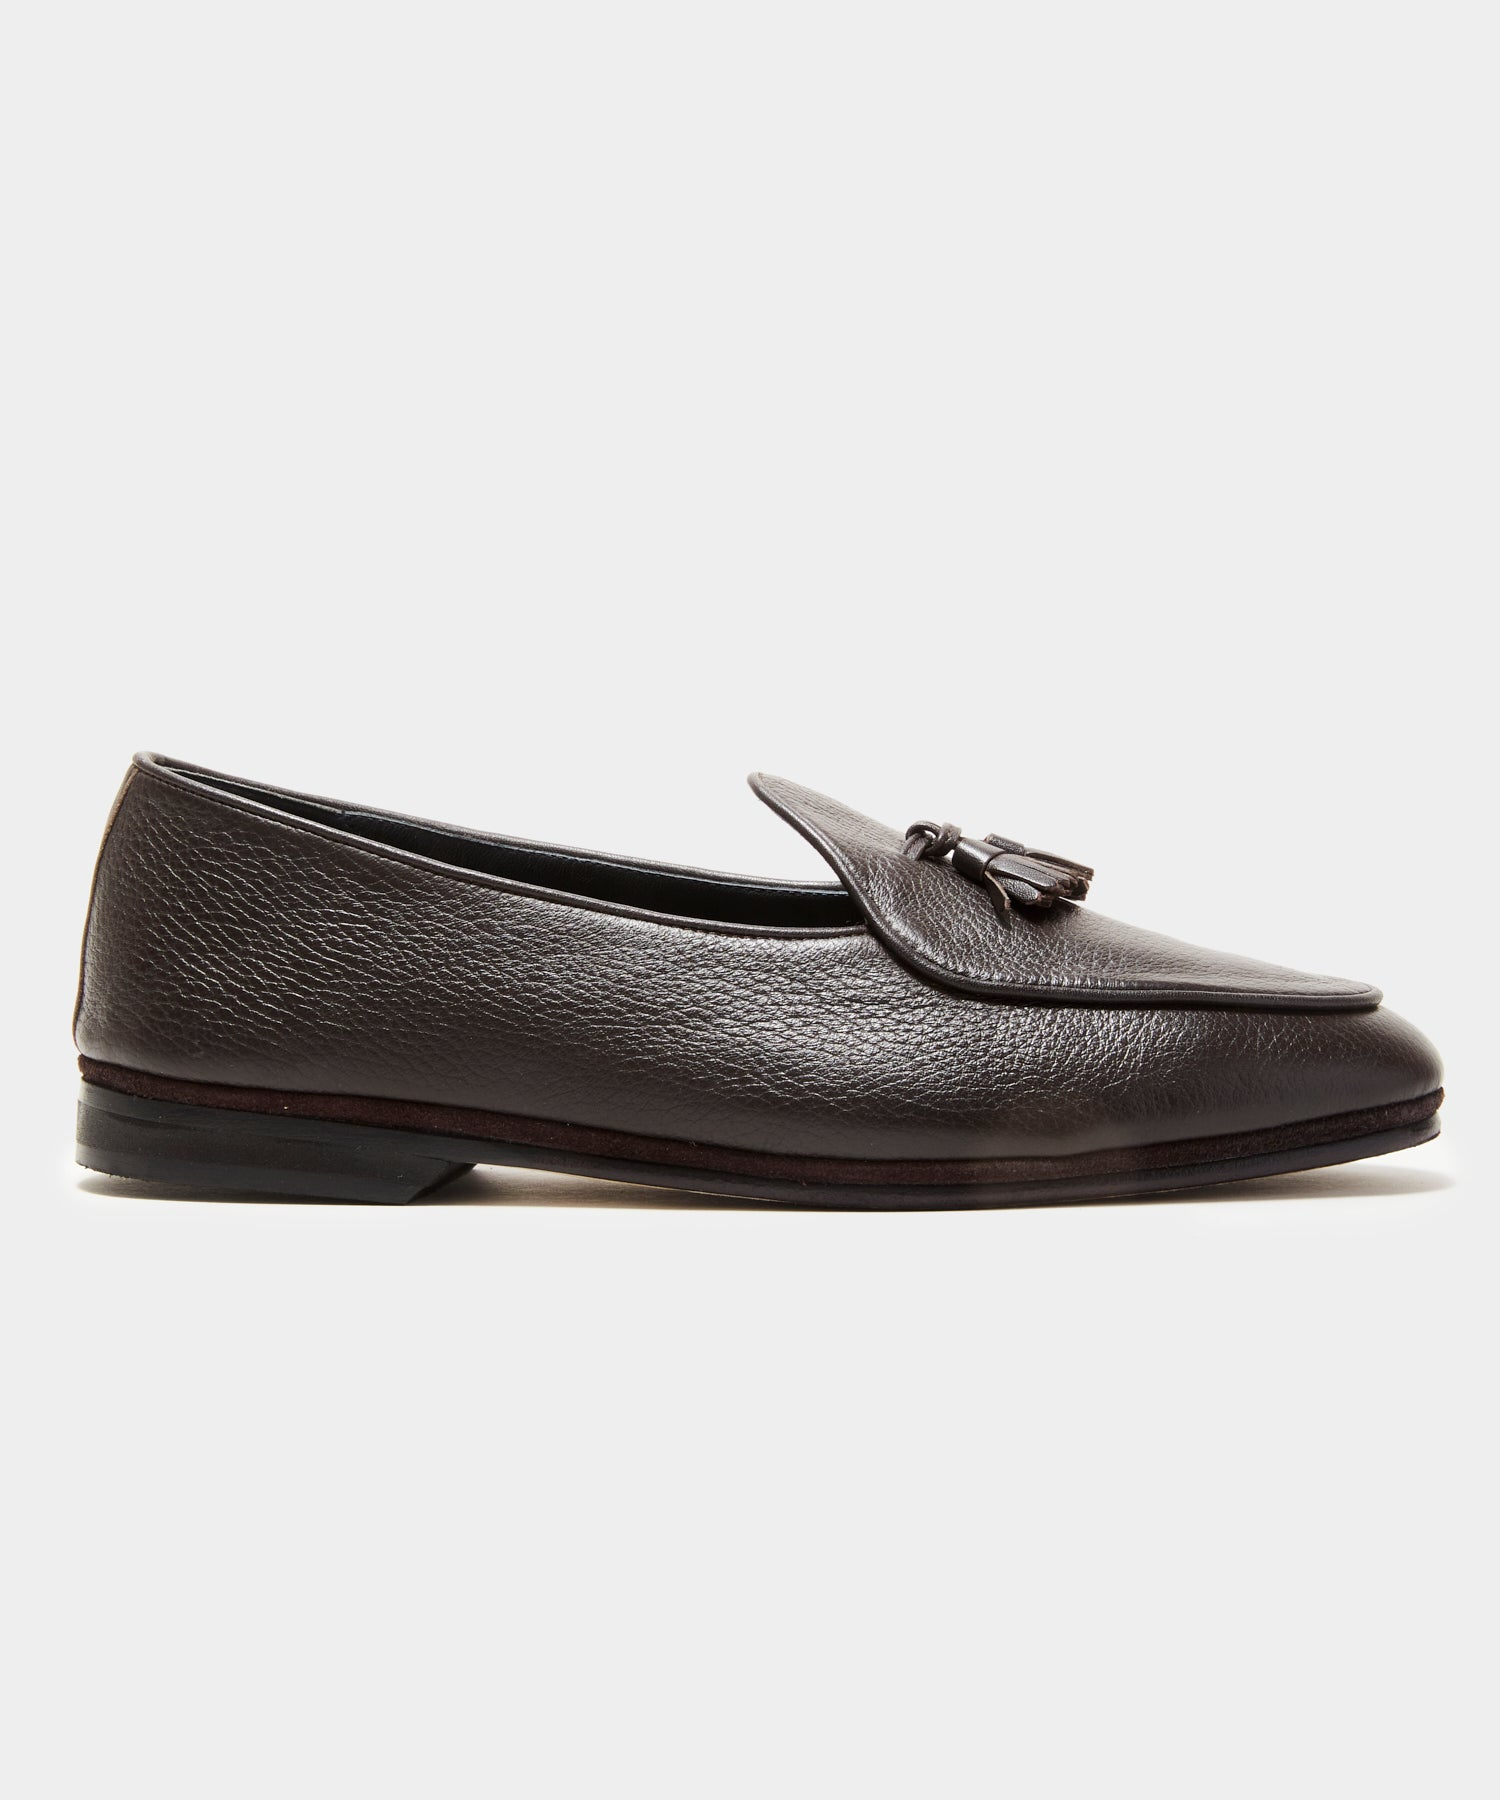 TS x Rubinacci Marphy Loafer Deer Leather in Brown